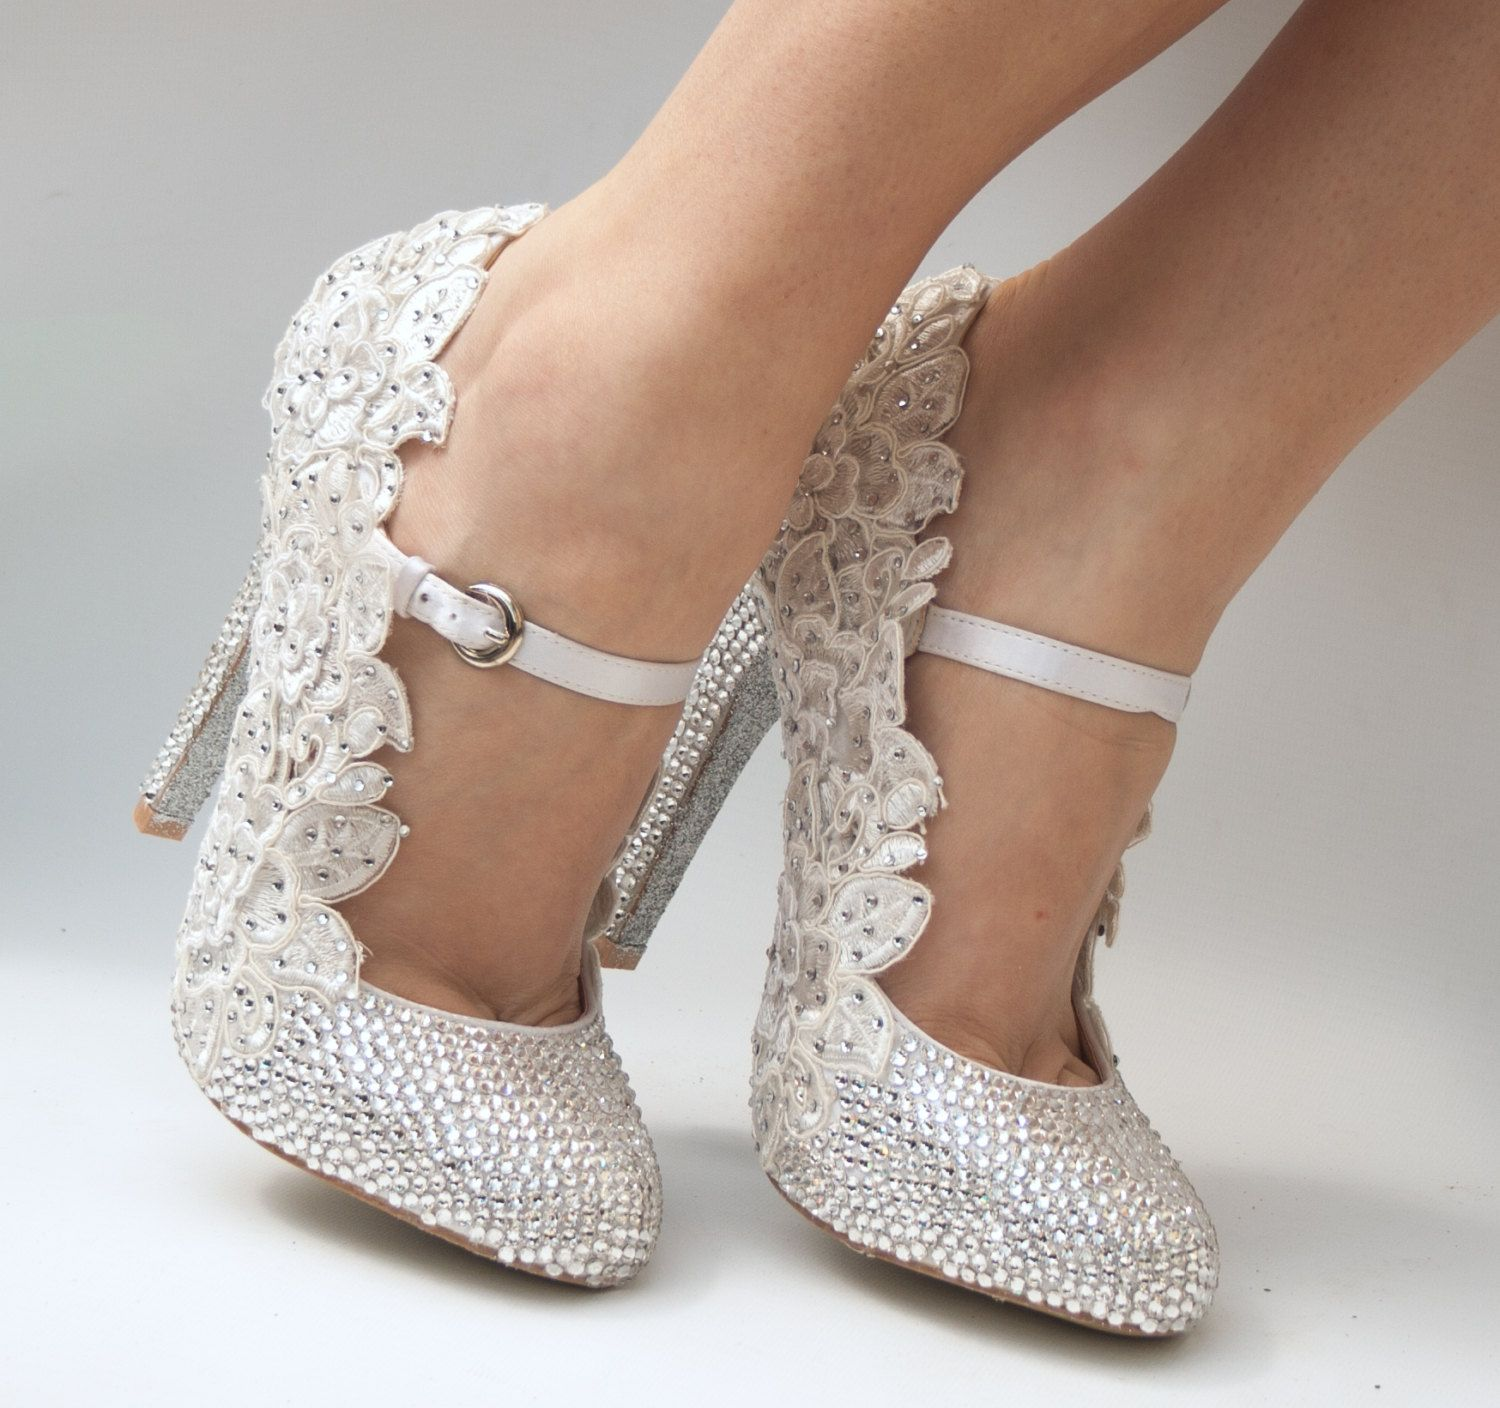 Wedding shoes for lace dress  Luxury wedding shoes with around  genuine swarovski crystals